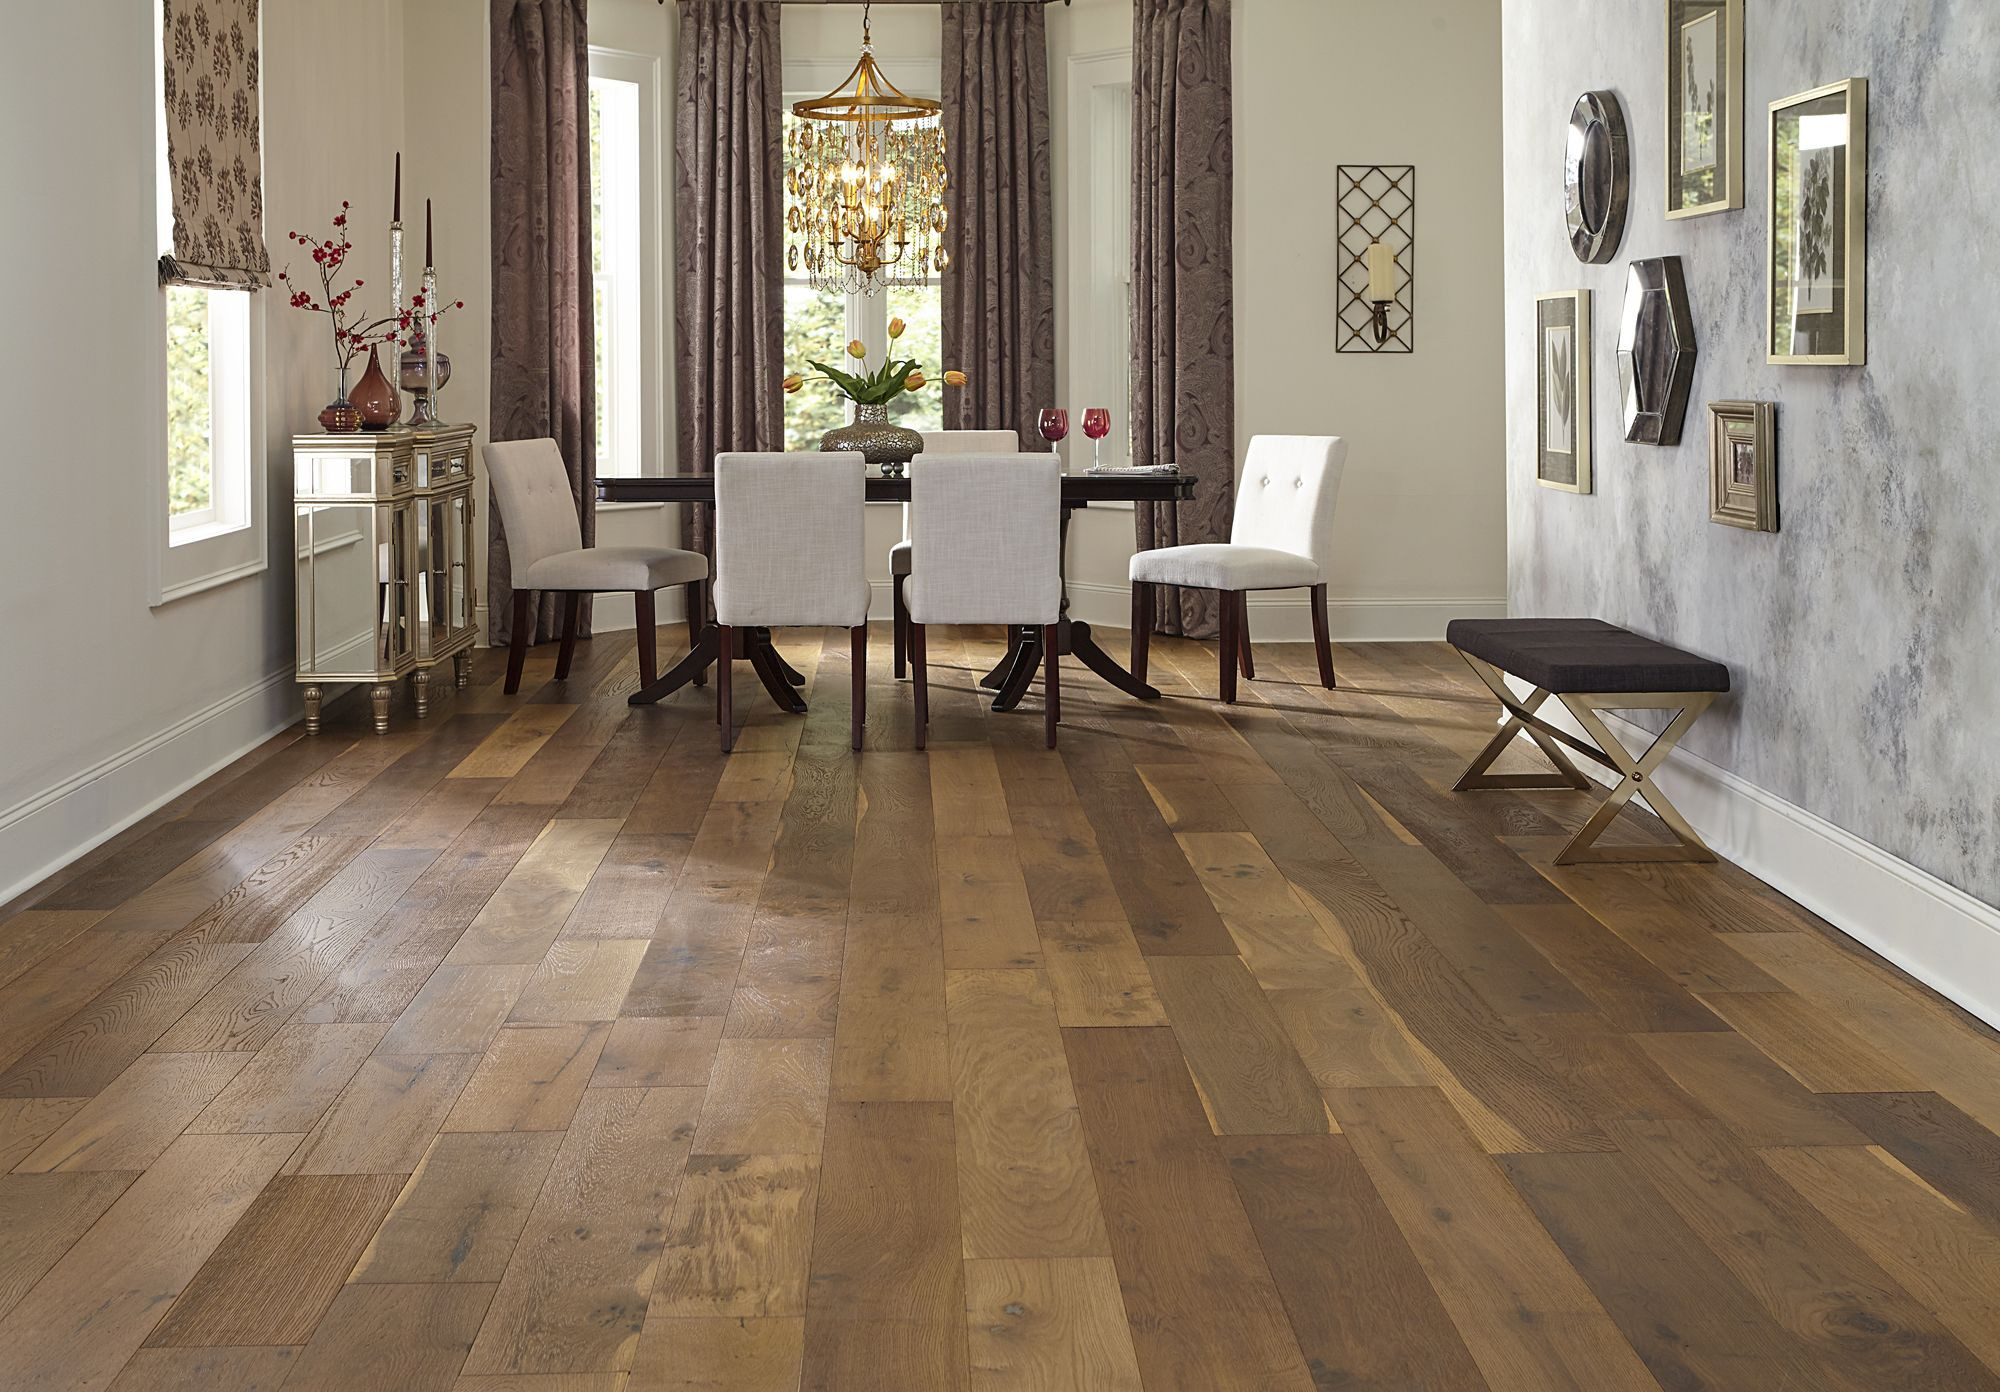 hardwood flooring store victoria park of 7 1 2 wide planks and a rustic look bellawood willow manor oak has within 7 1 2 wide planks and a rustic look bellawood willow manor oak has a storied old world appearance